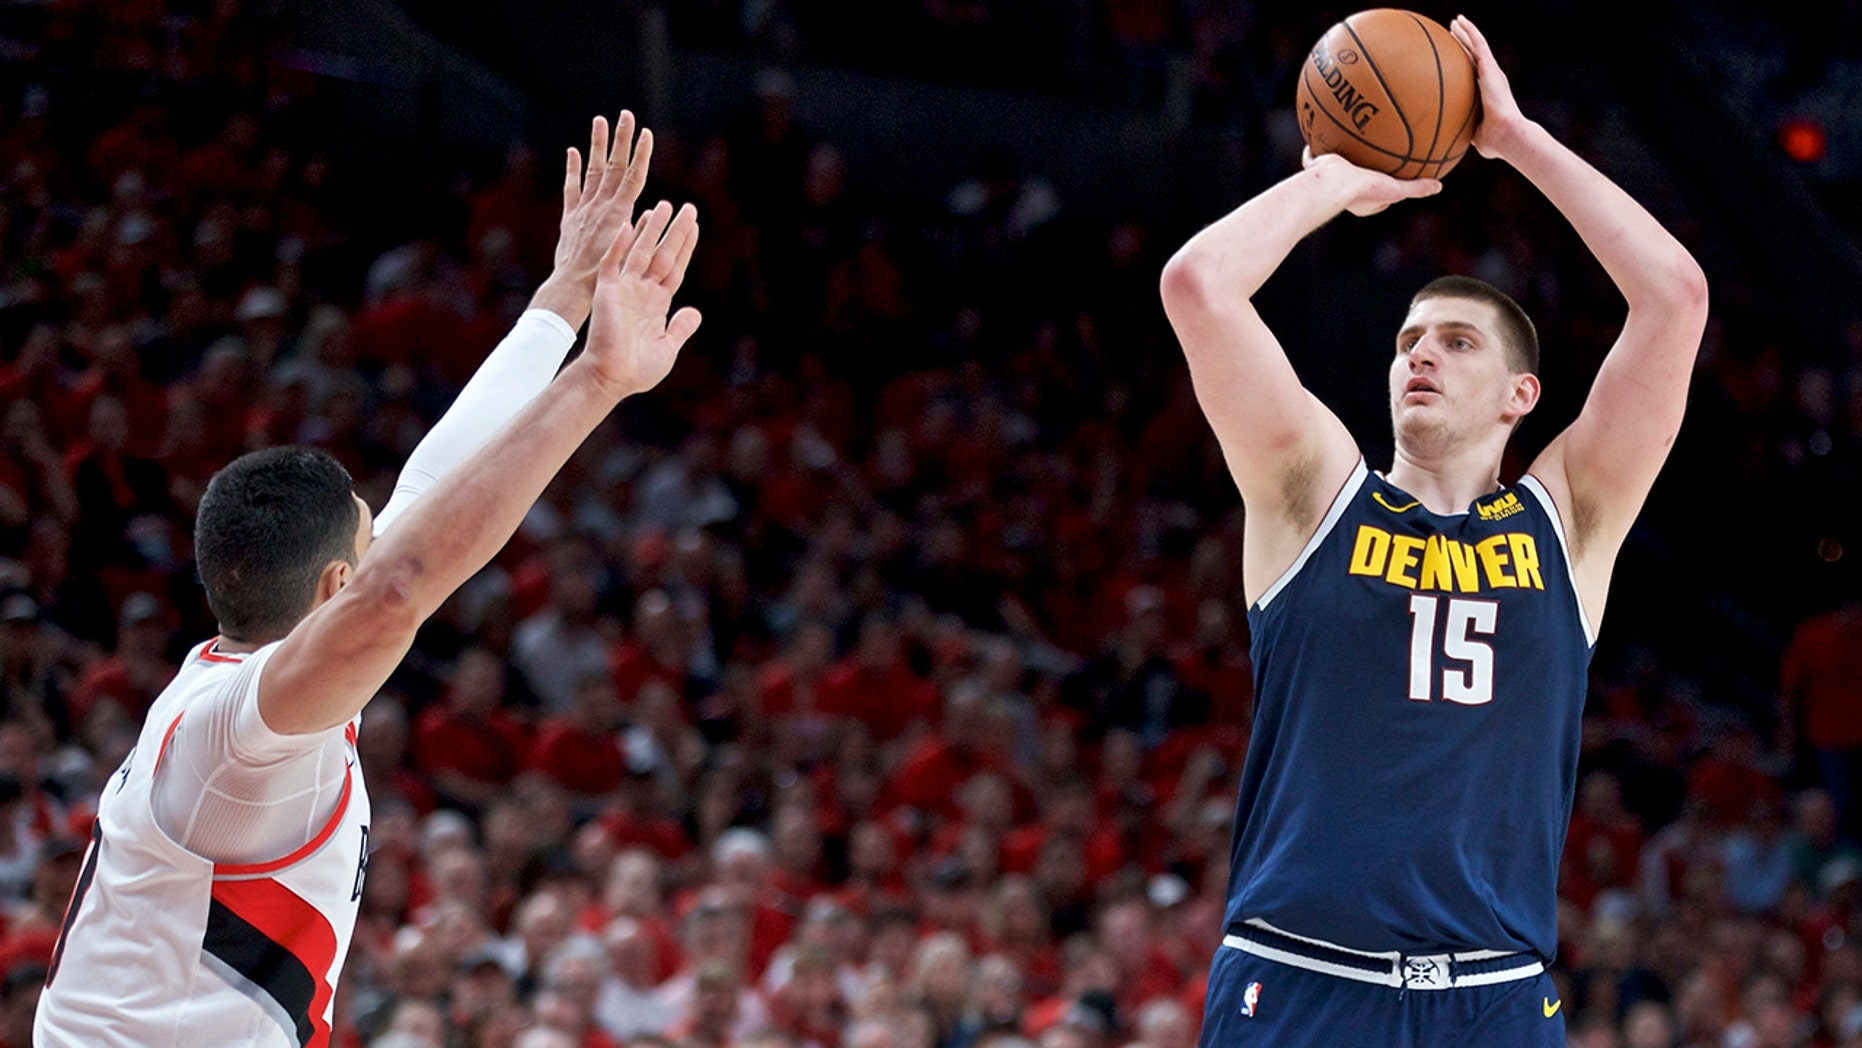 Denver Nuggets center Nikola Jokic, right, looks to shoot over Portland Trail Blazers center Enes Kanter during the first half of Game 4 of an NBA basketball second-round playoff series Sunday, May 5, 2019, in Portland, Ore. (AP Photo/Craig Mitchelldyer)